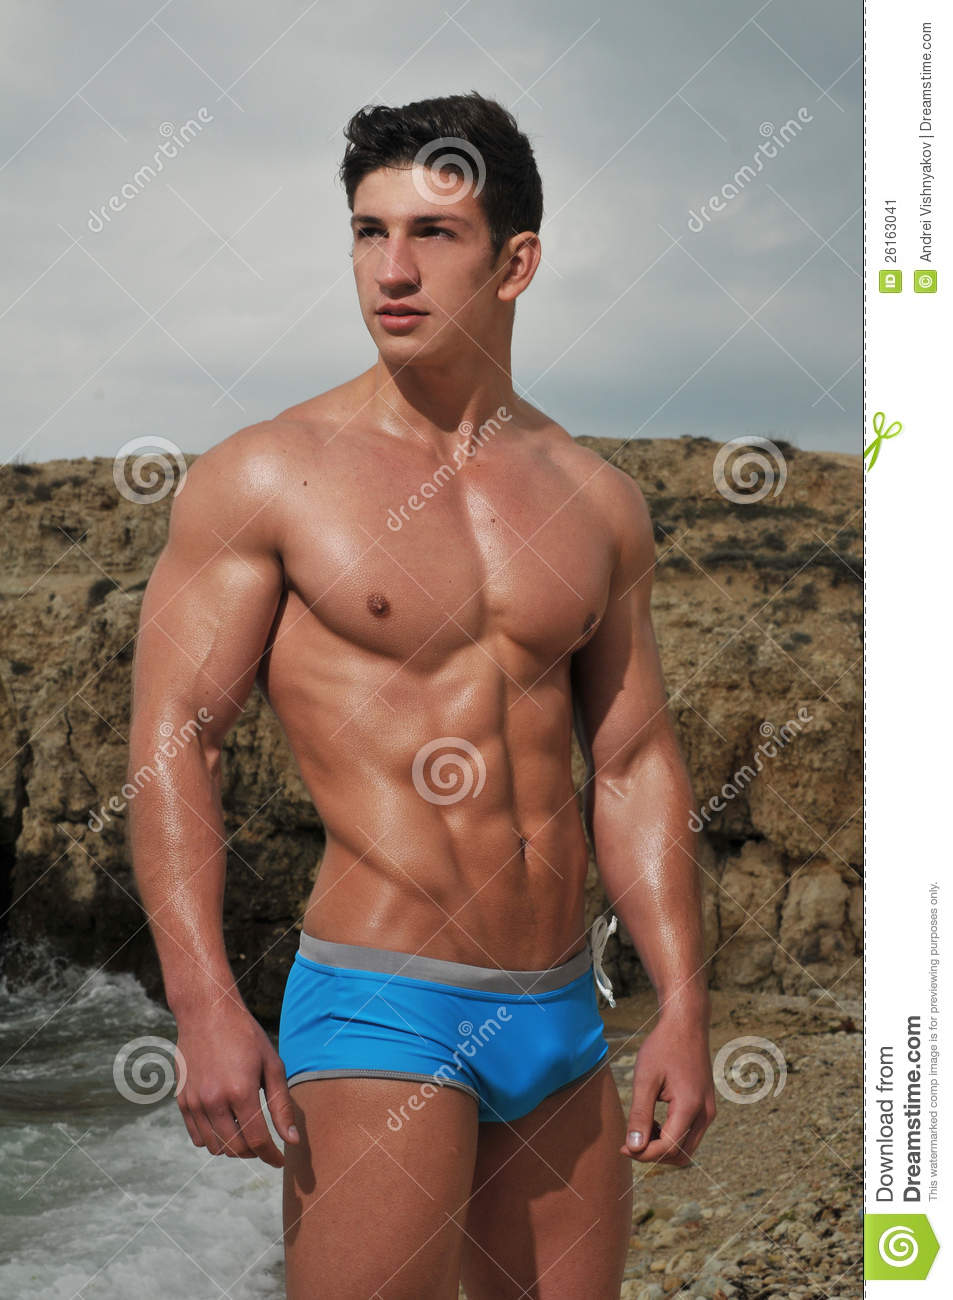 Male Model On The Beach Stock Image - Image: 26163041